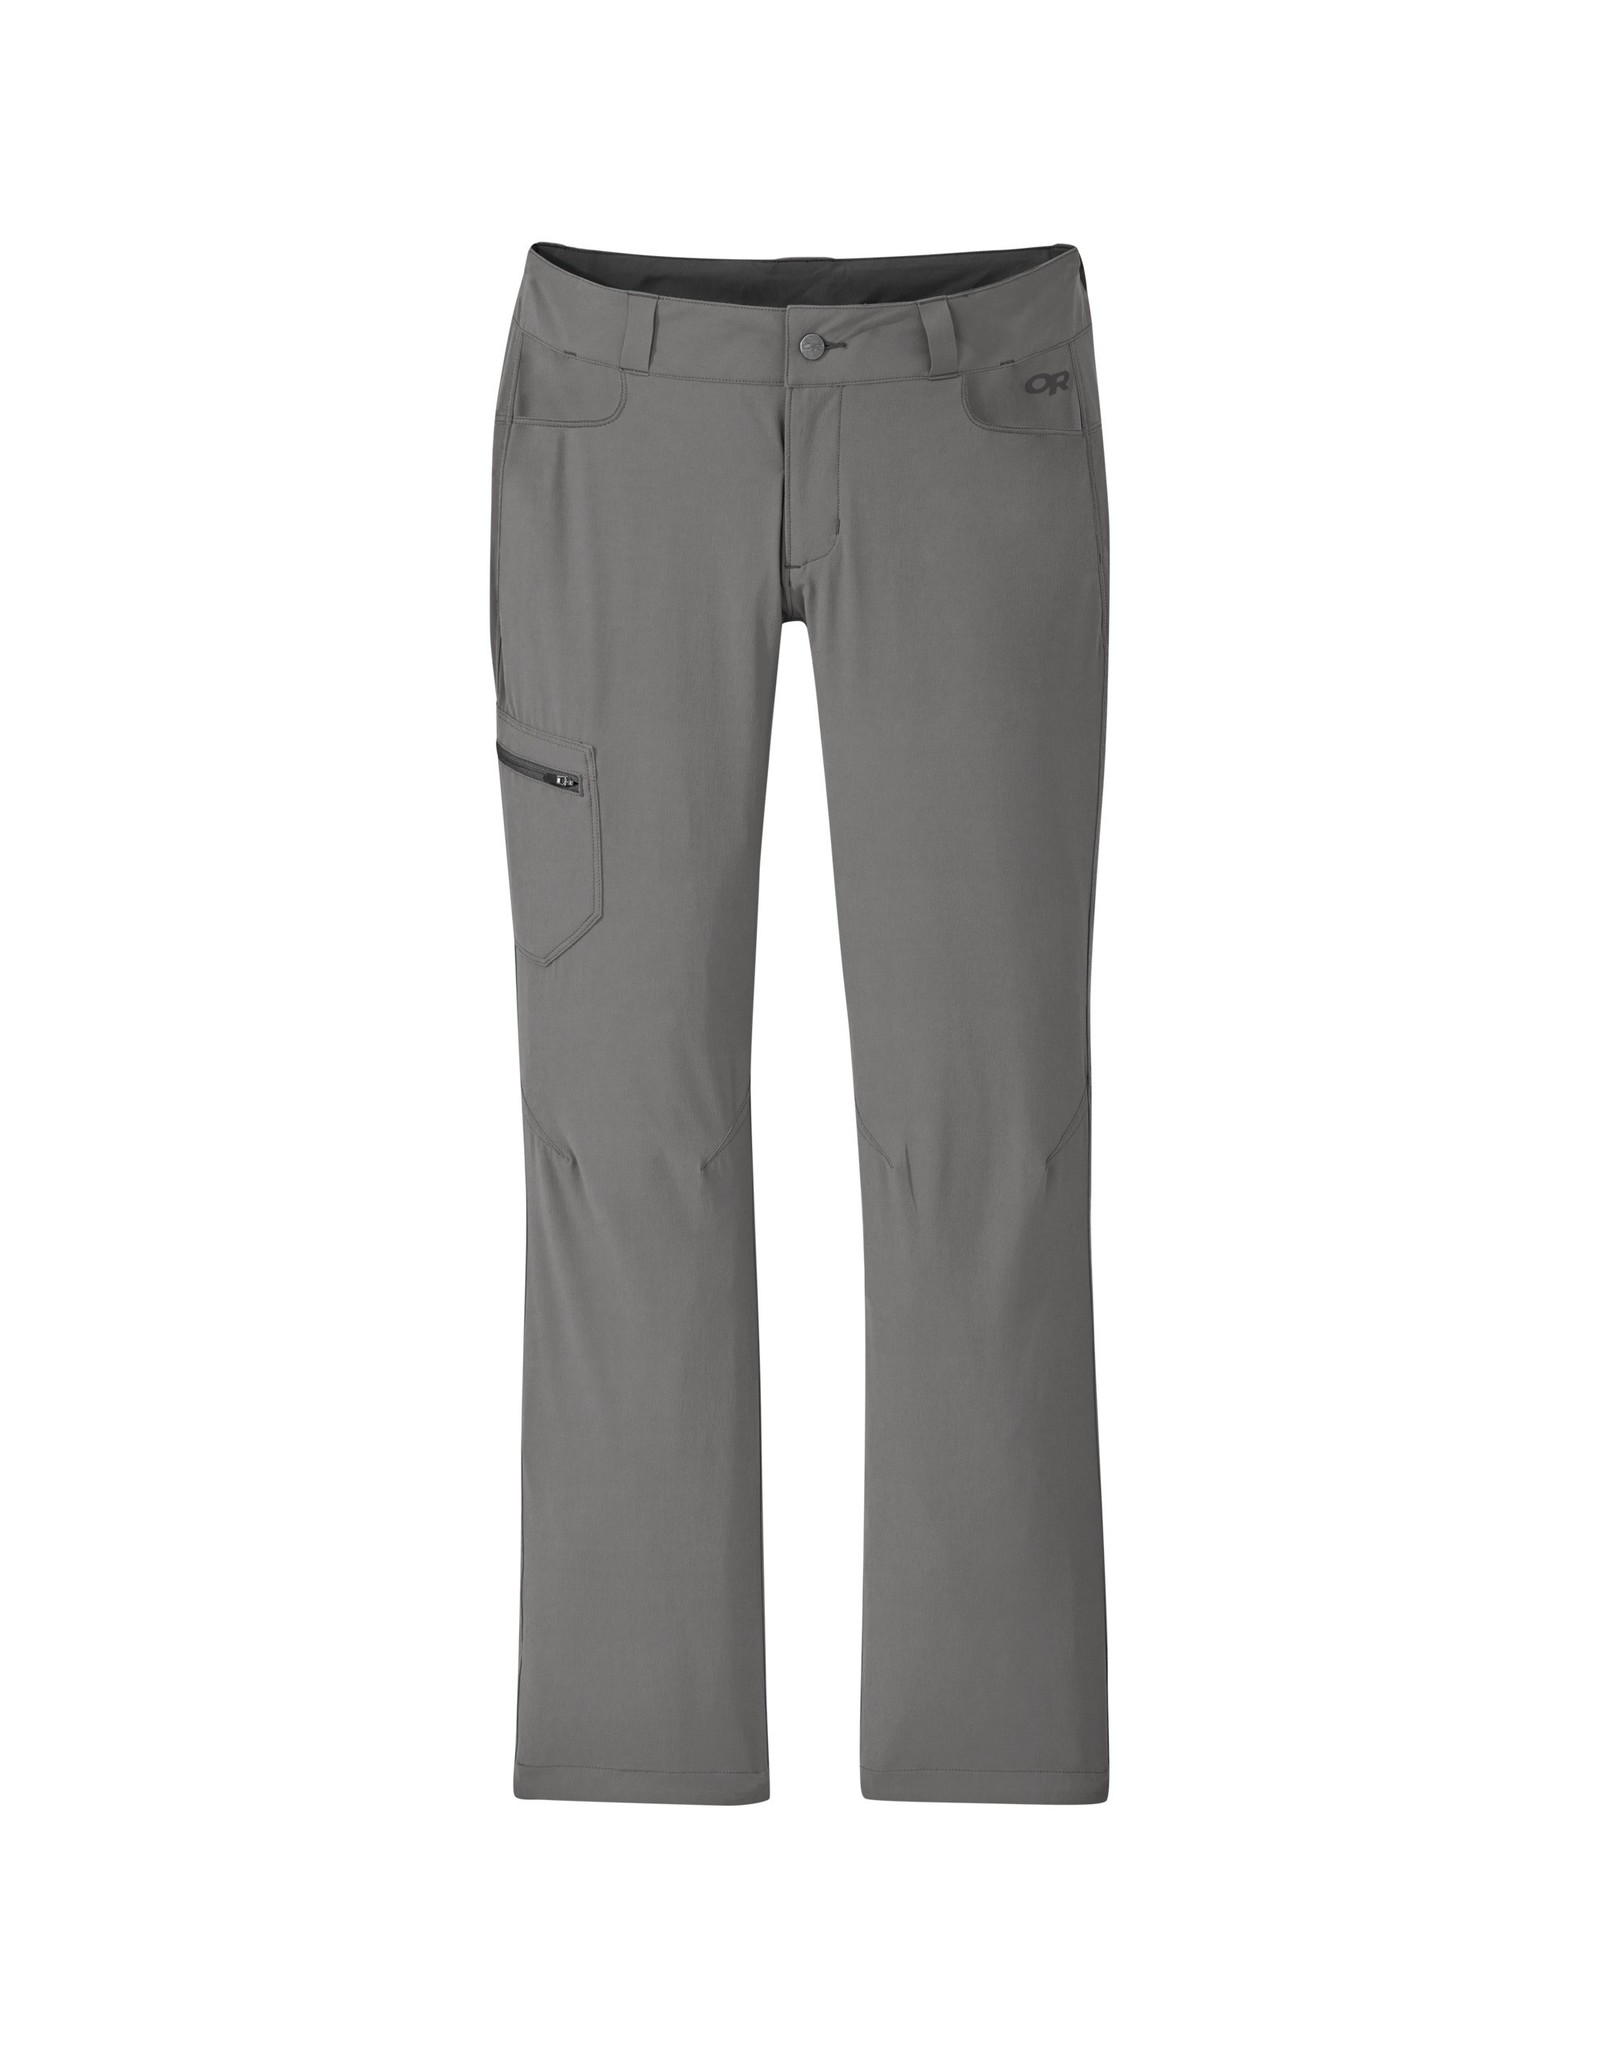 Outdoor Research Outdoor Research Ferrosi Pants - Women